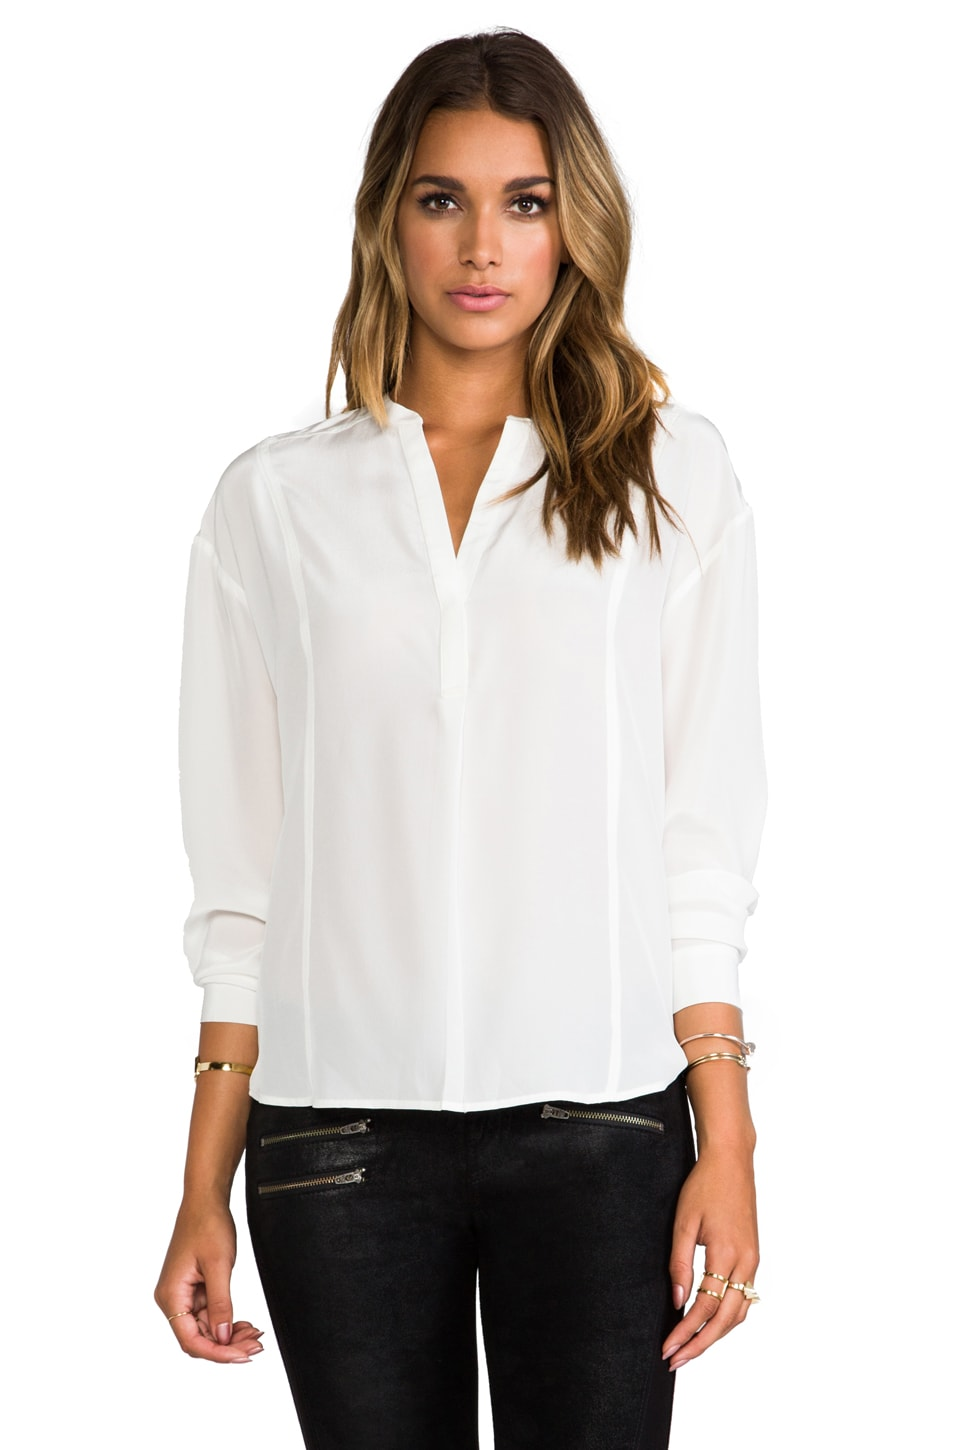 Elizabeth and James Pamela Blouse in Ivory